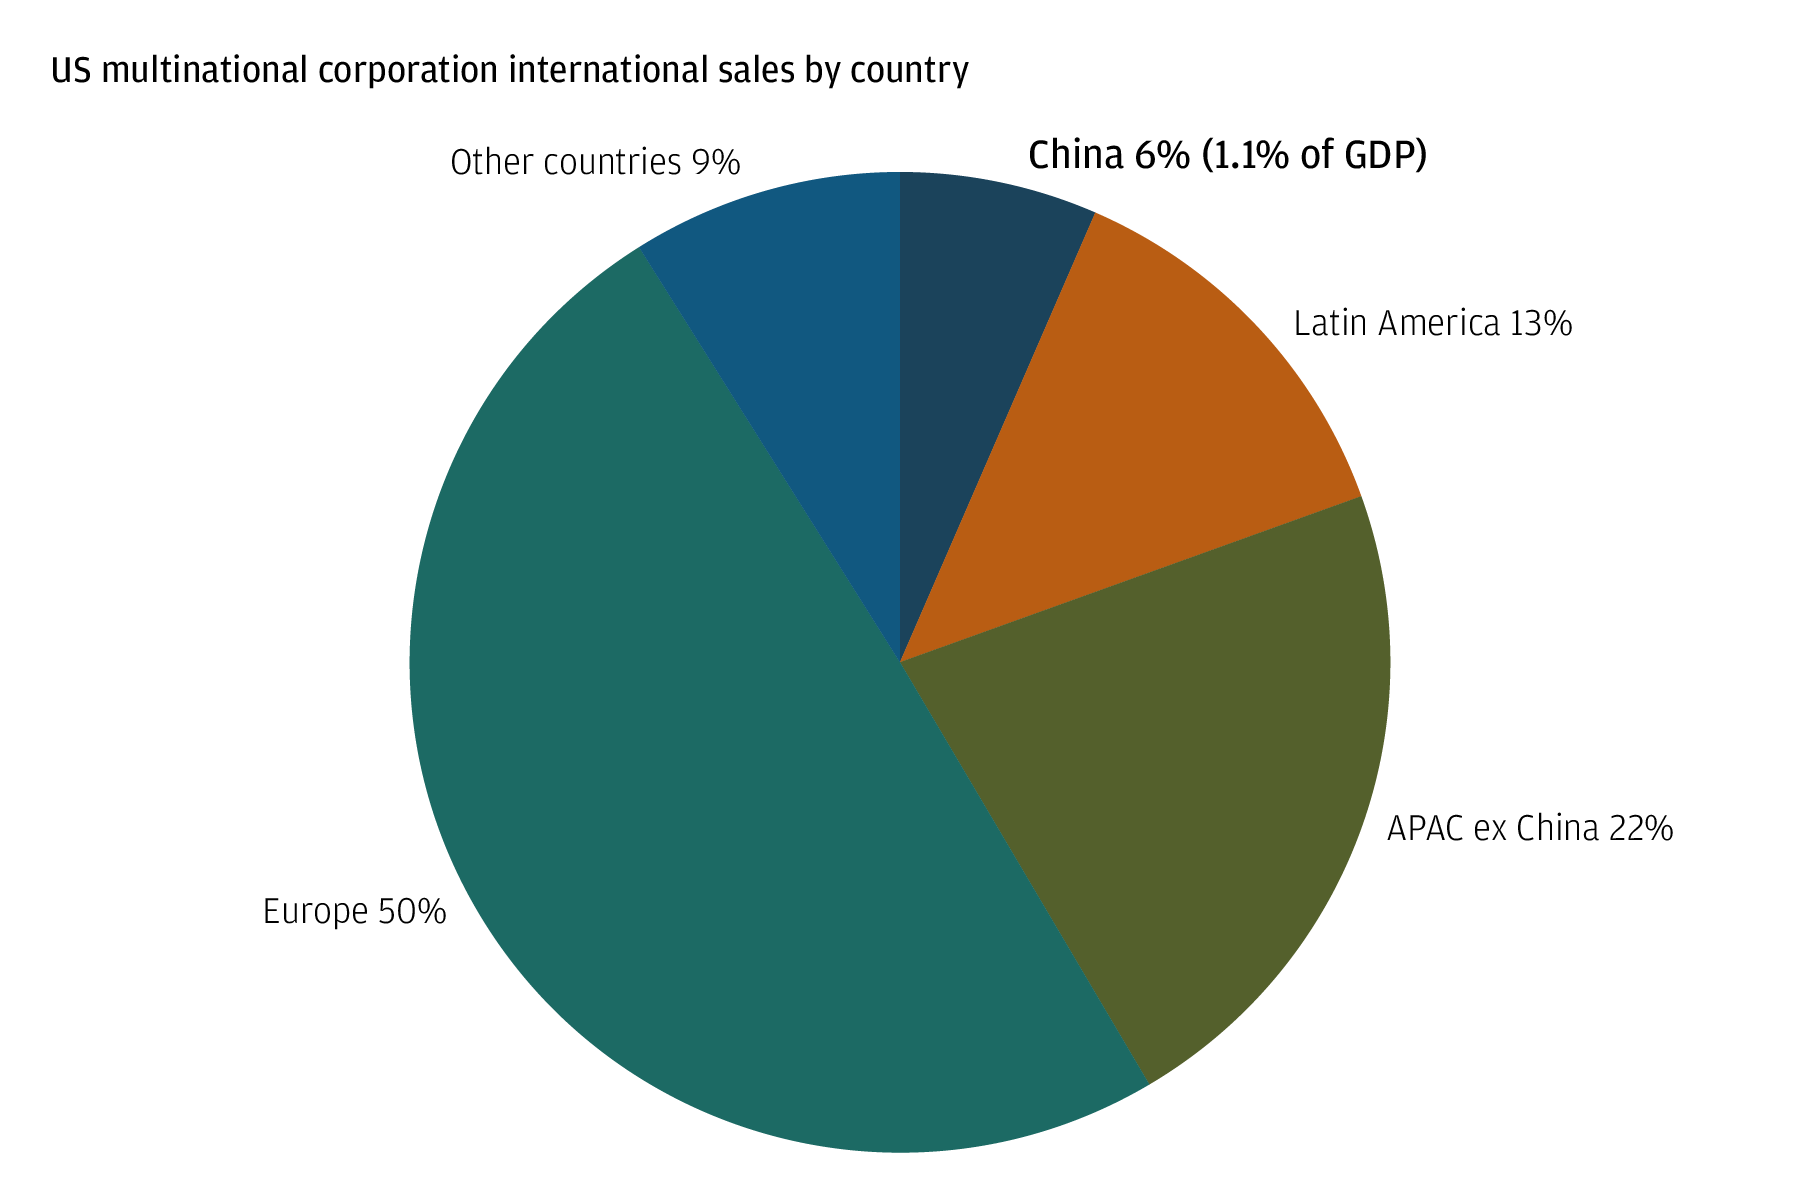 Pie chart shows the international sales of U.S. multinational corporation by country, including the distribution among China, Latin America, APAC ex-China, Europe and other countries.